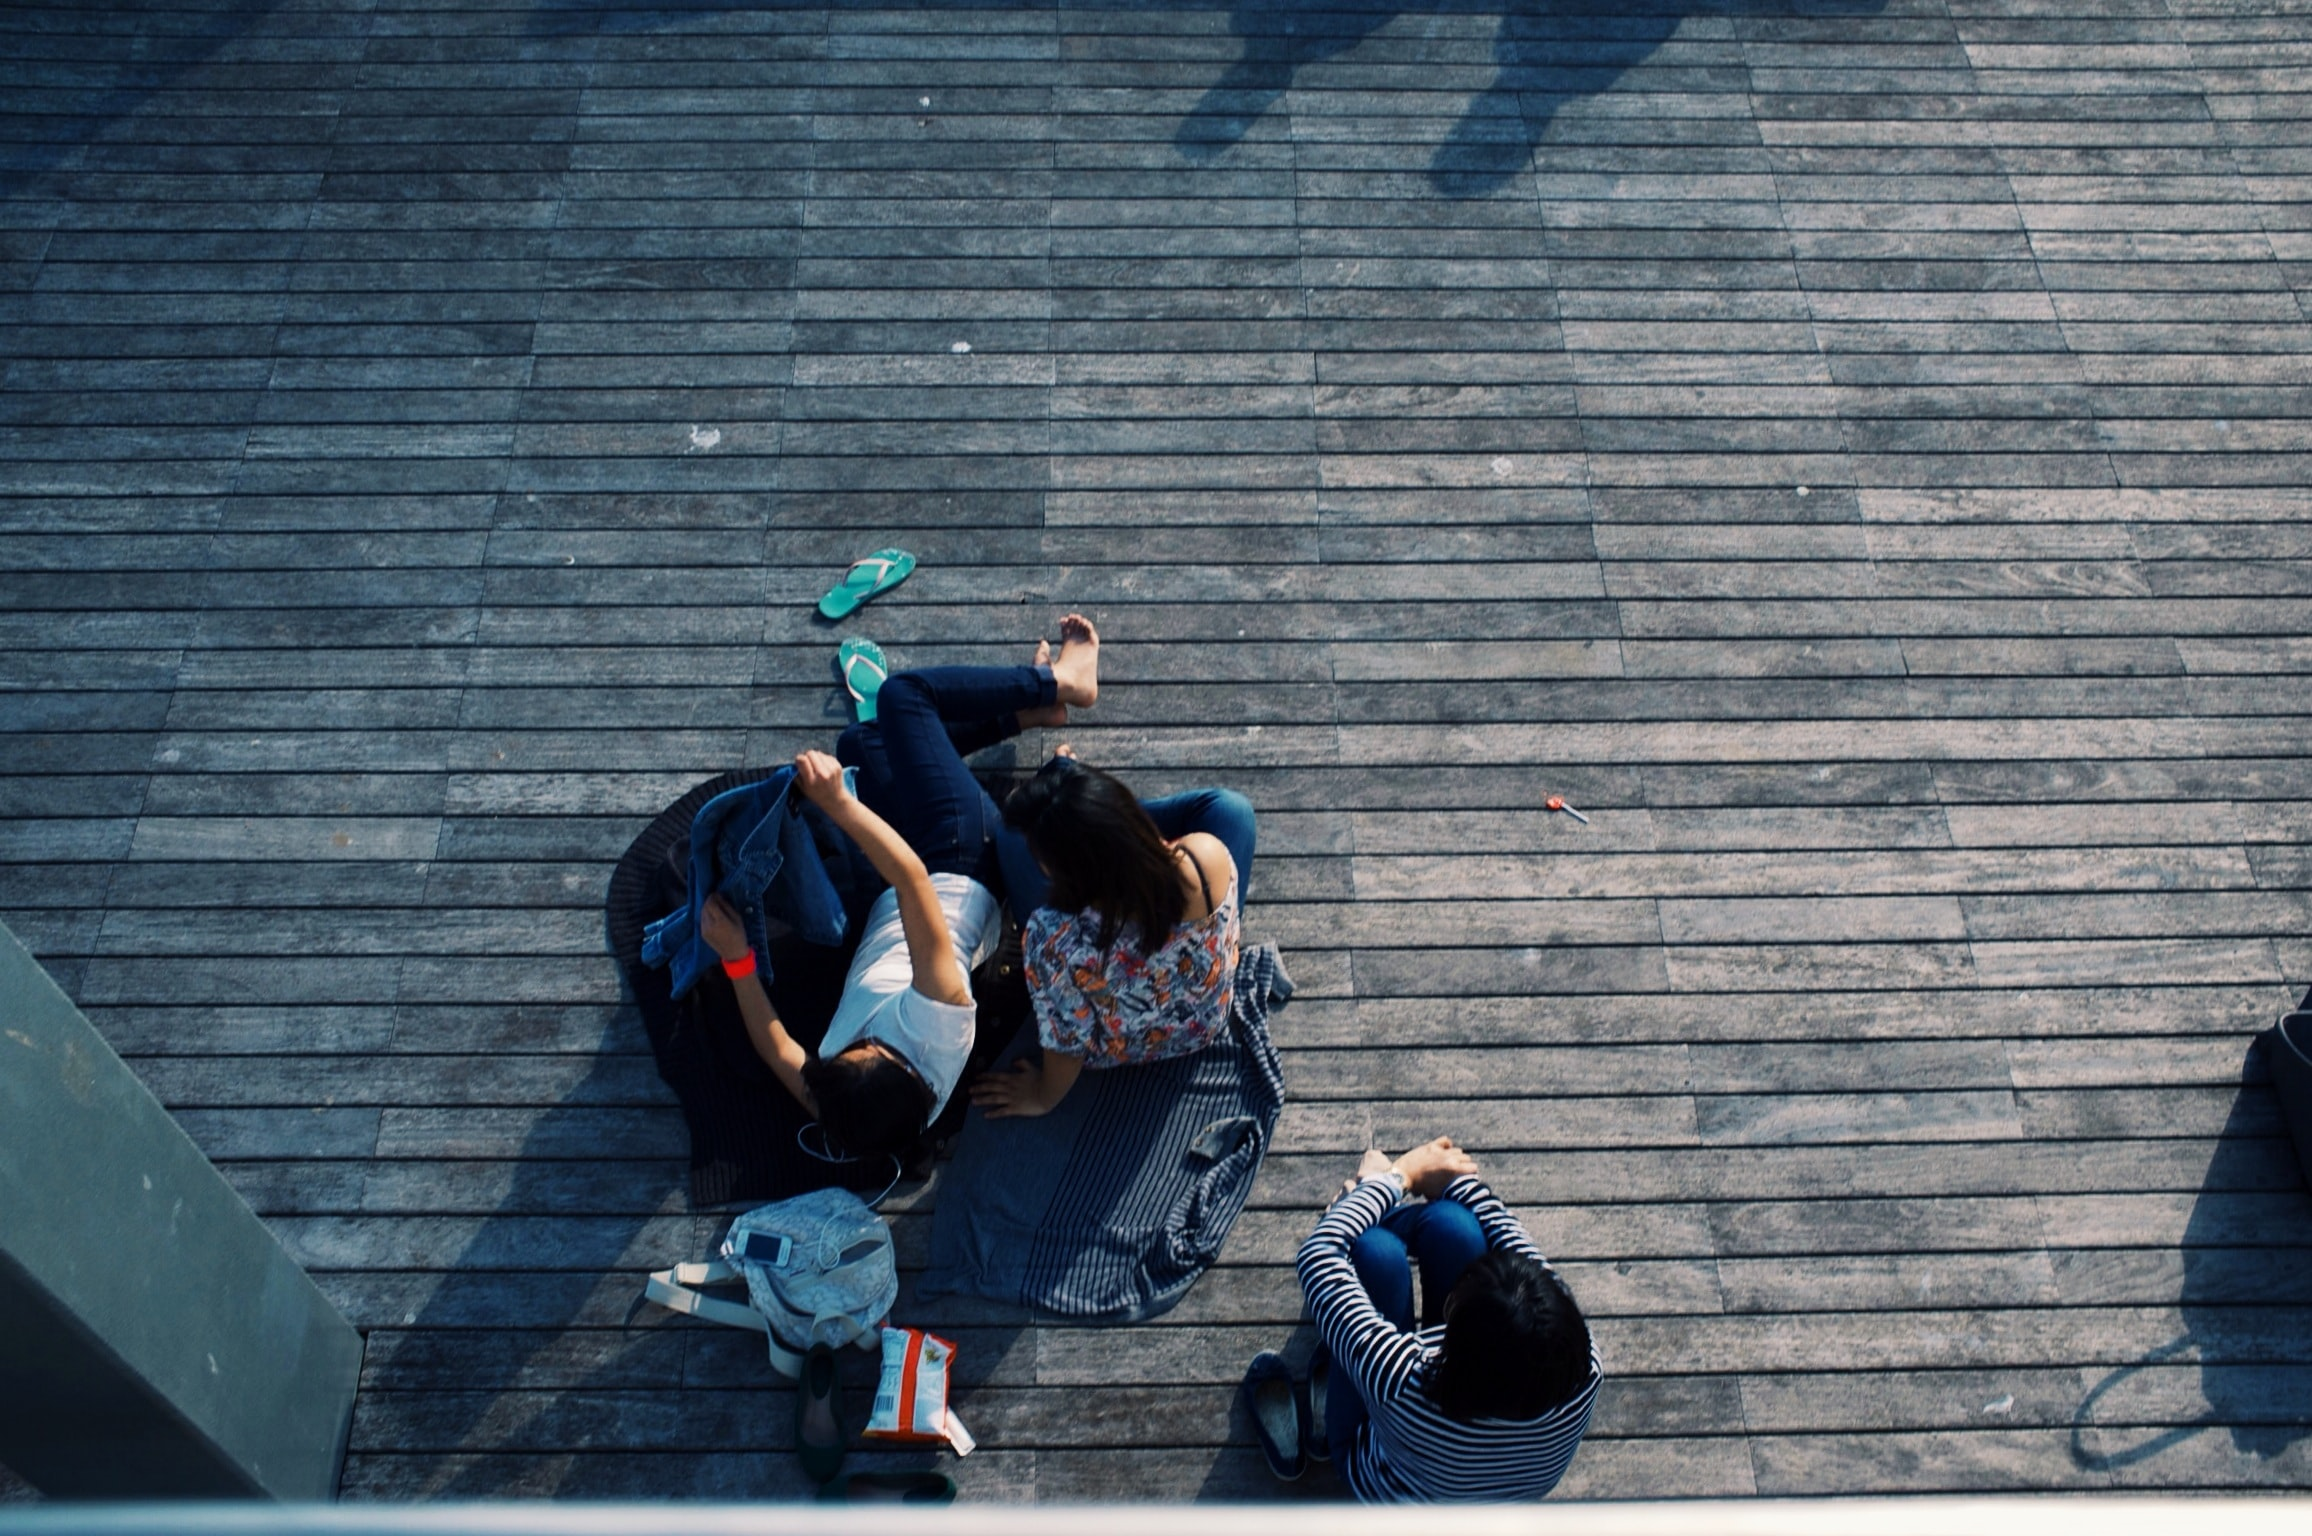 Overhead image of a group of teenagers sitting outside together.